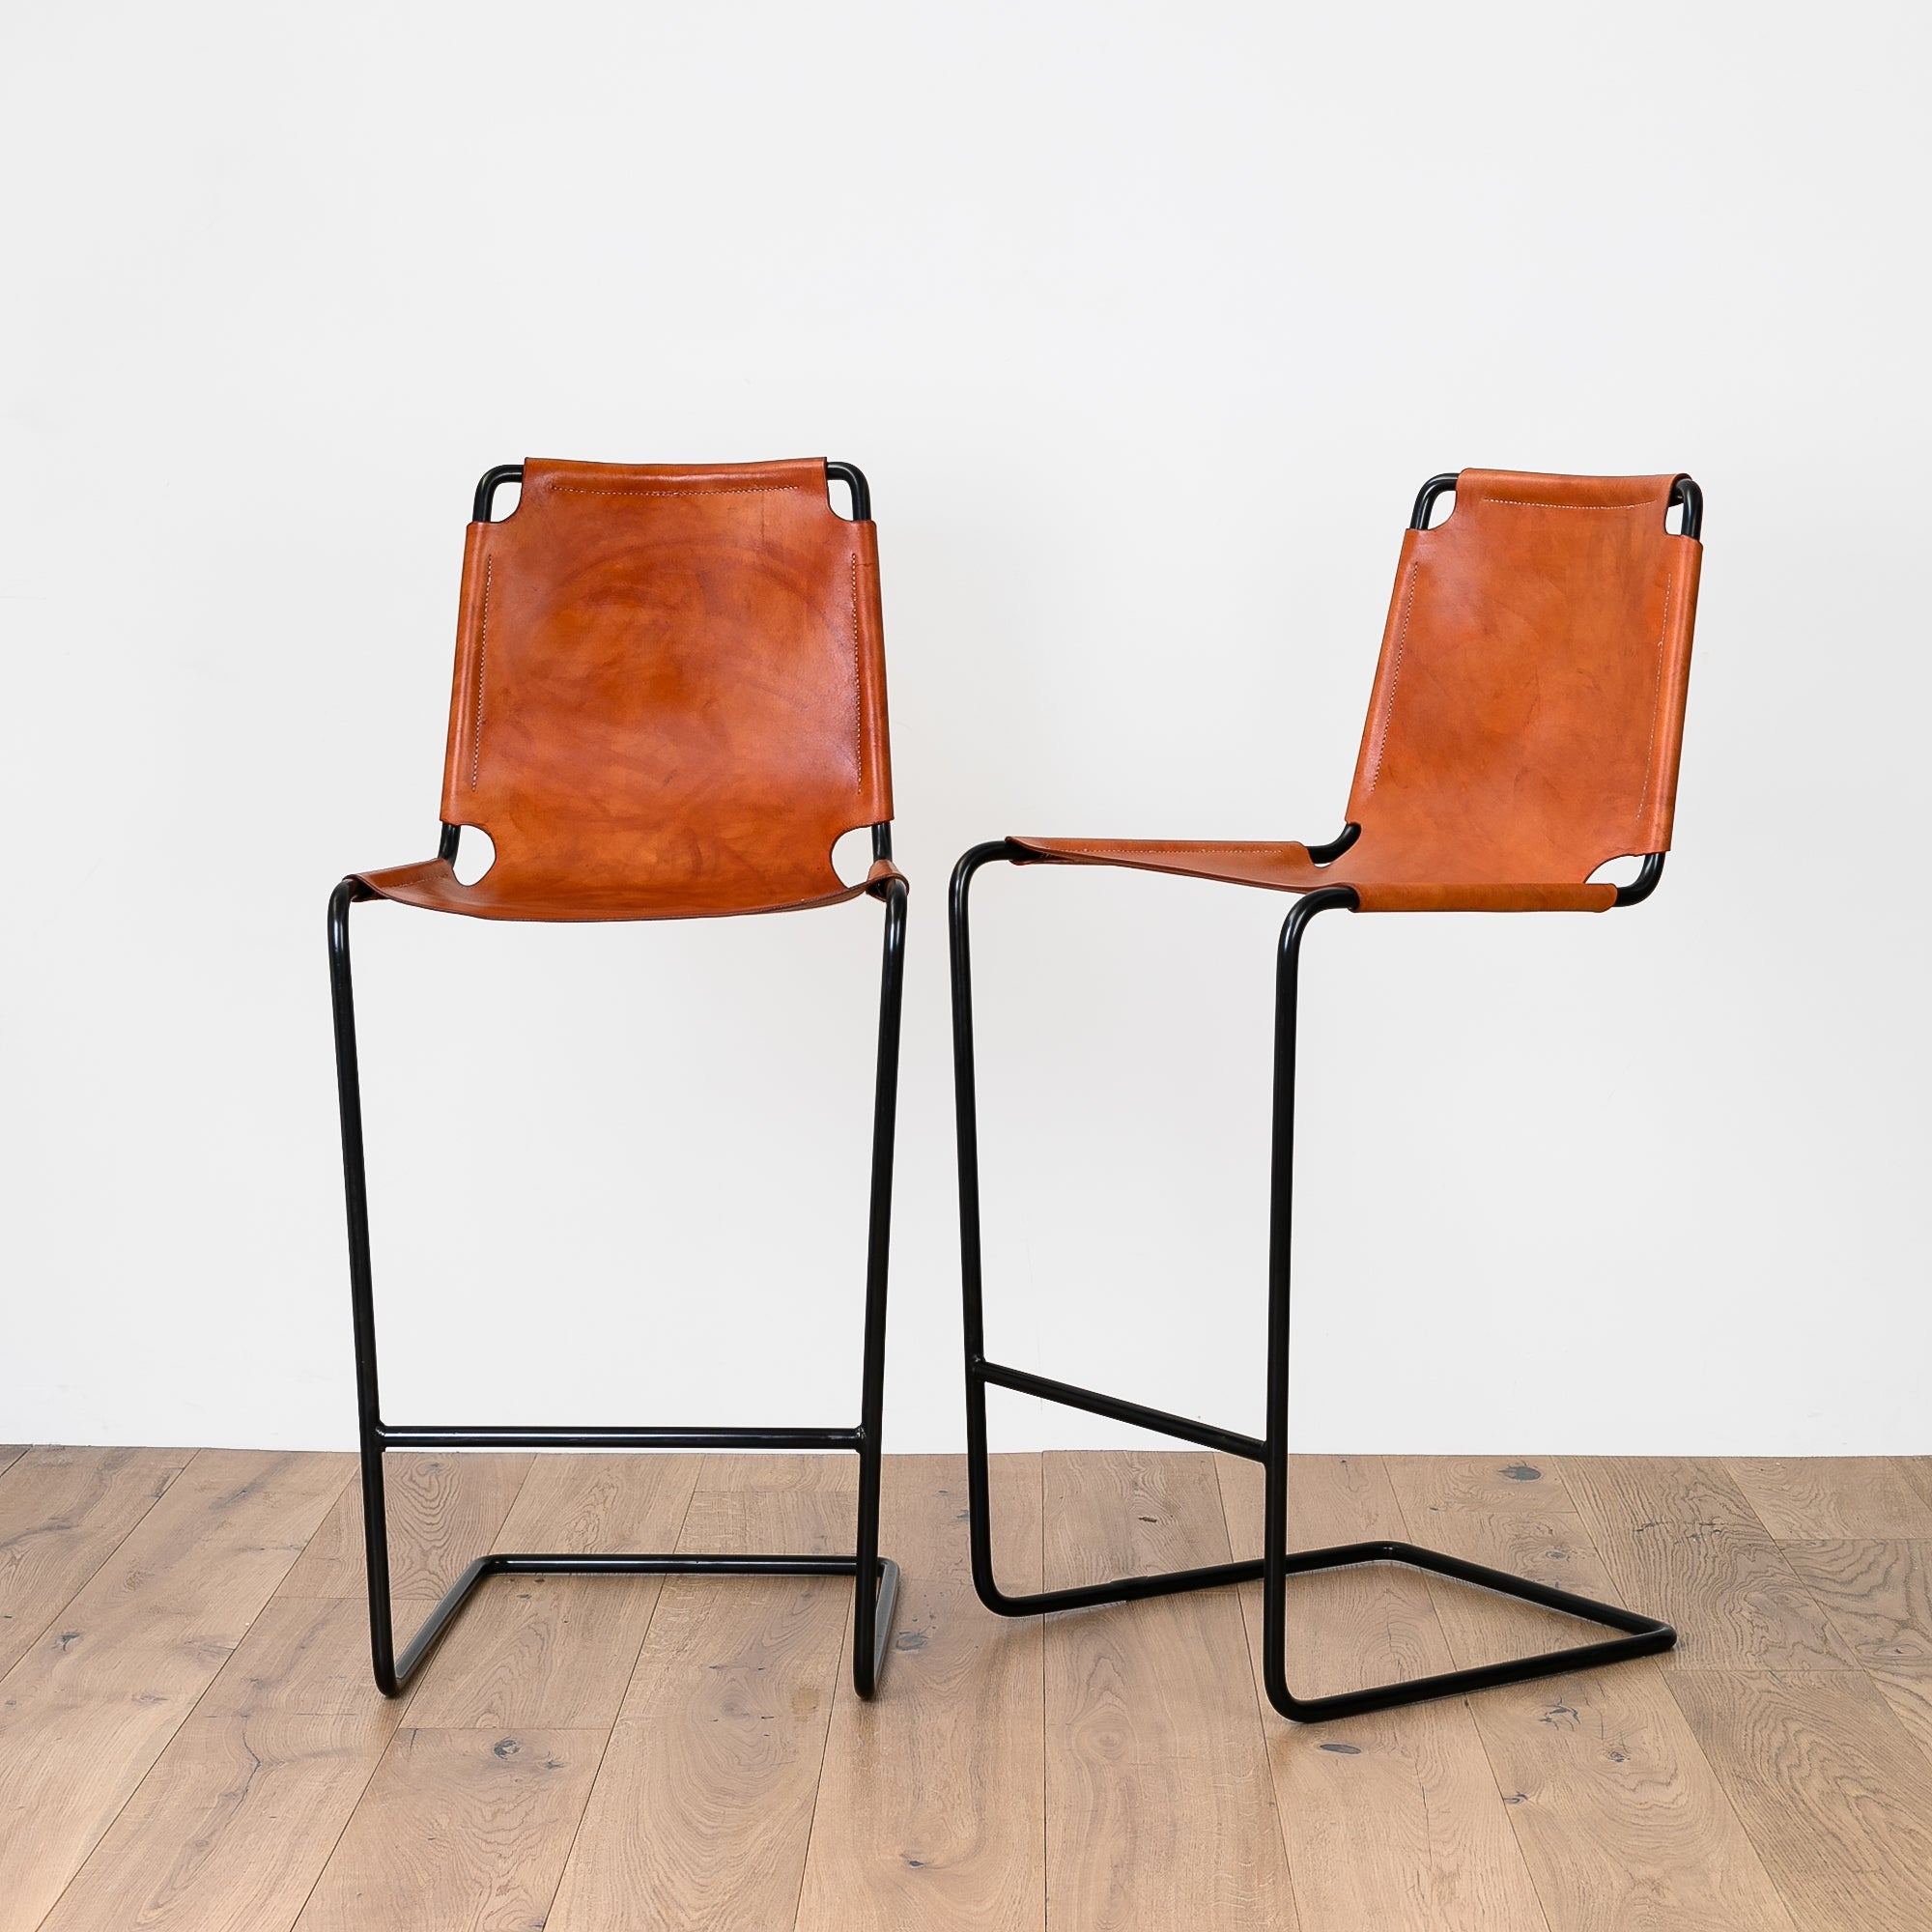 Awe Inspiring Leather And Iron Bar Stool Machost Co Dining Chair Design Ideas Machostcouk